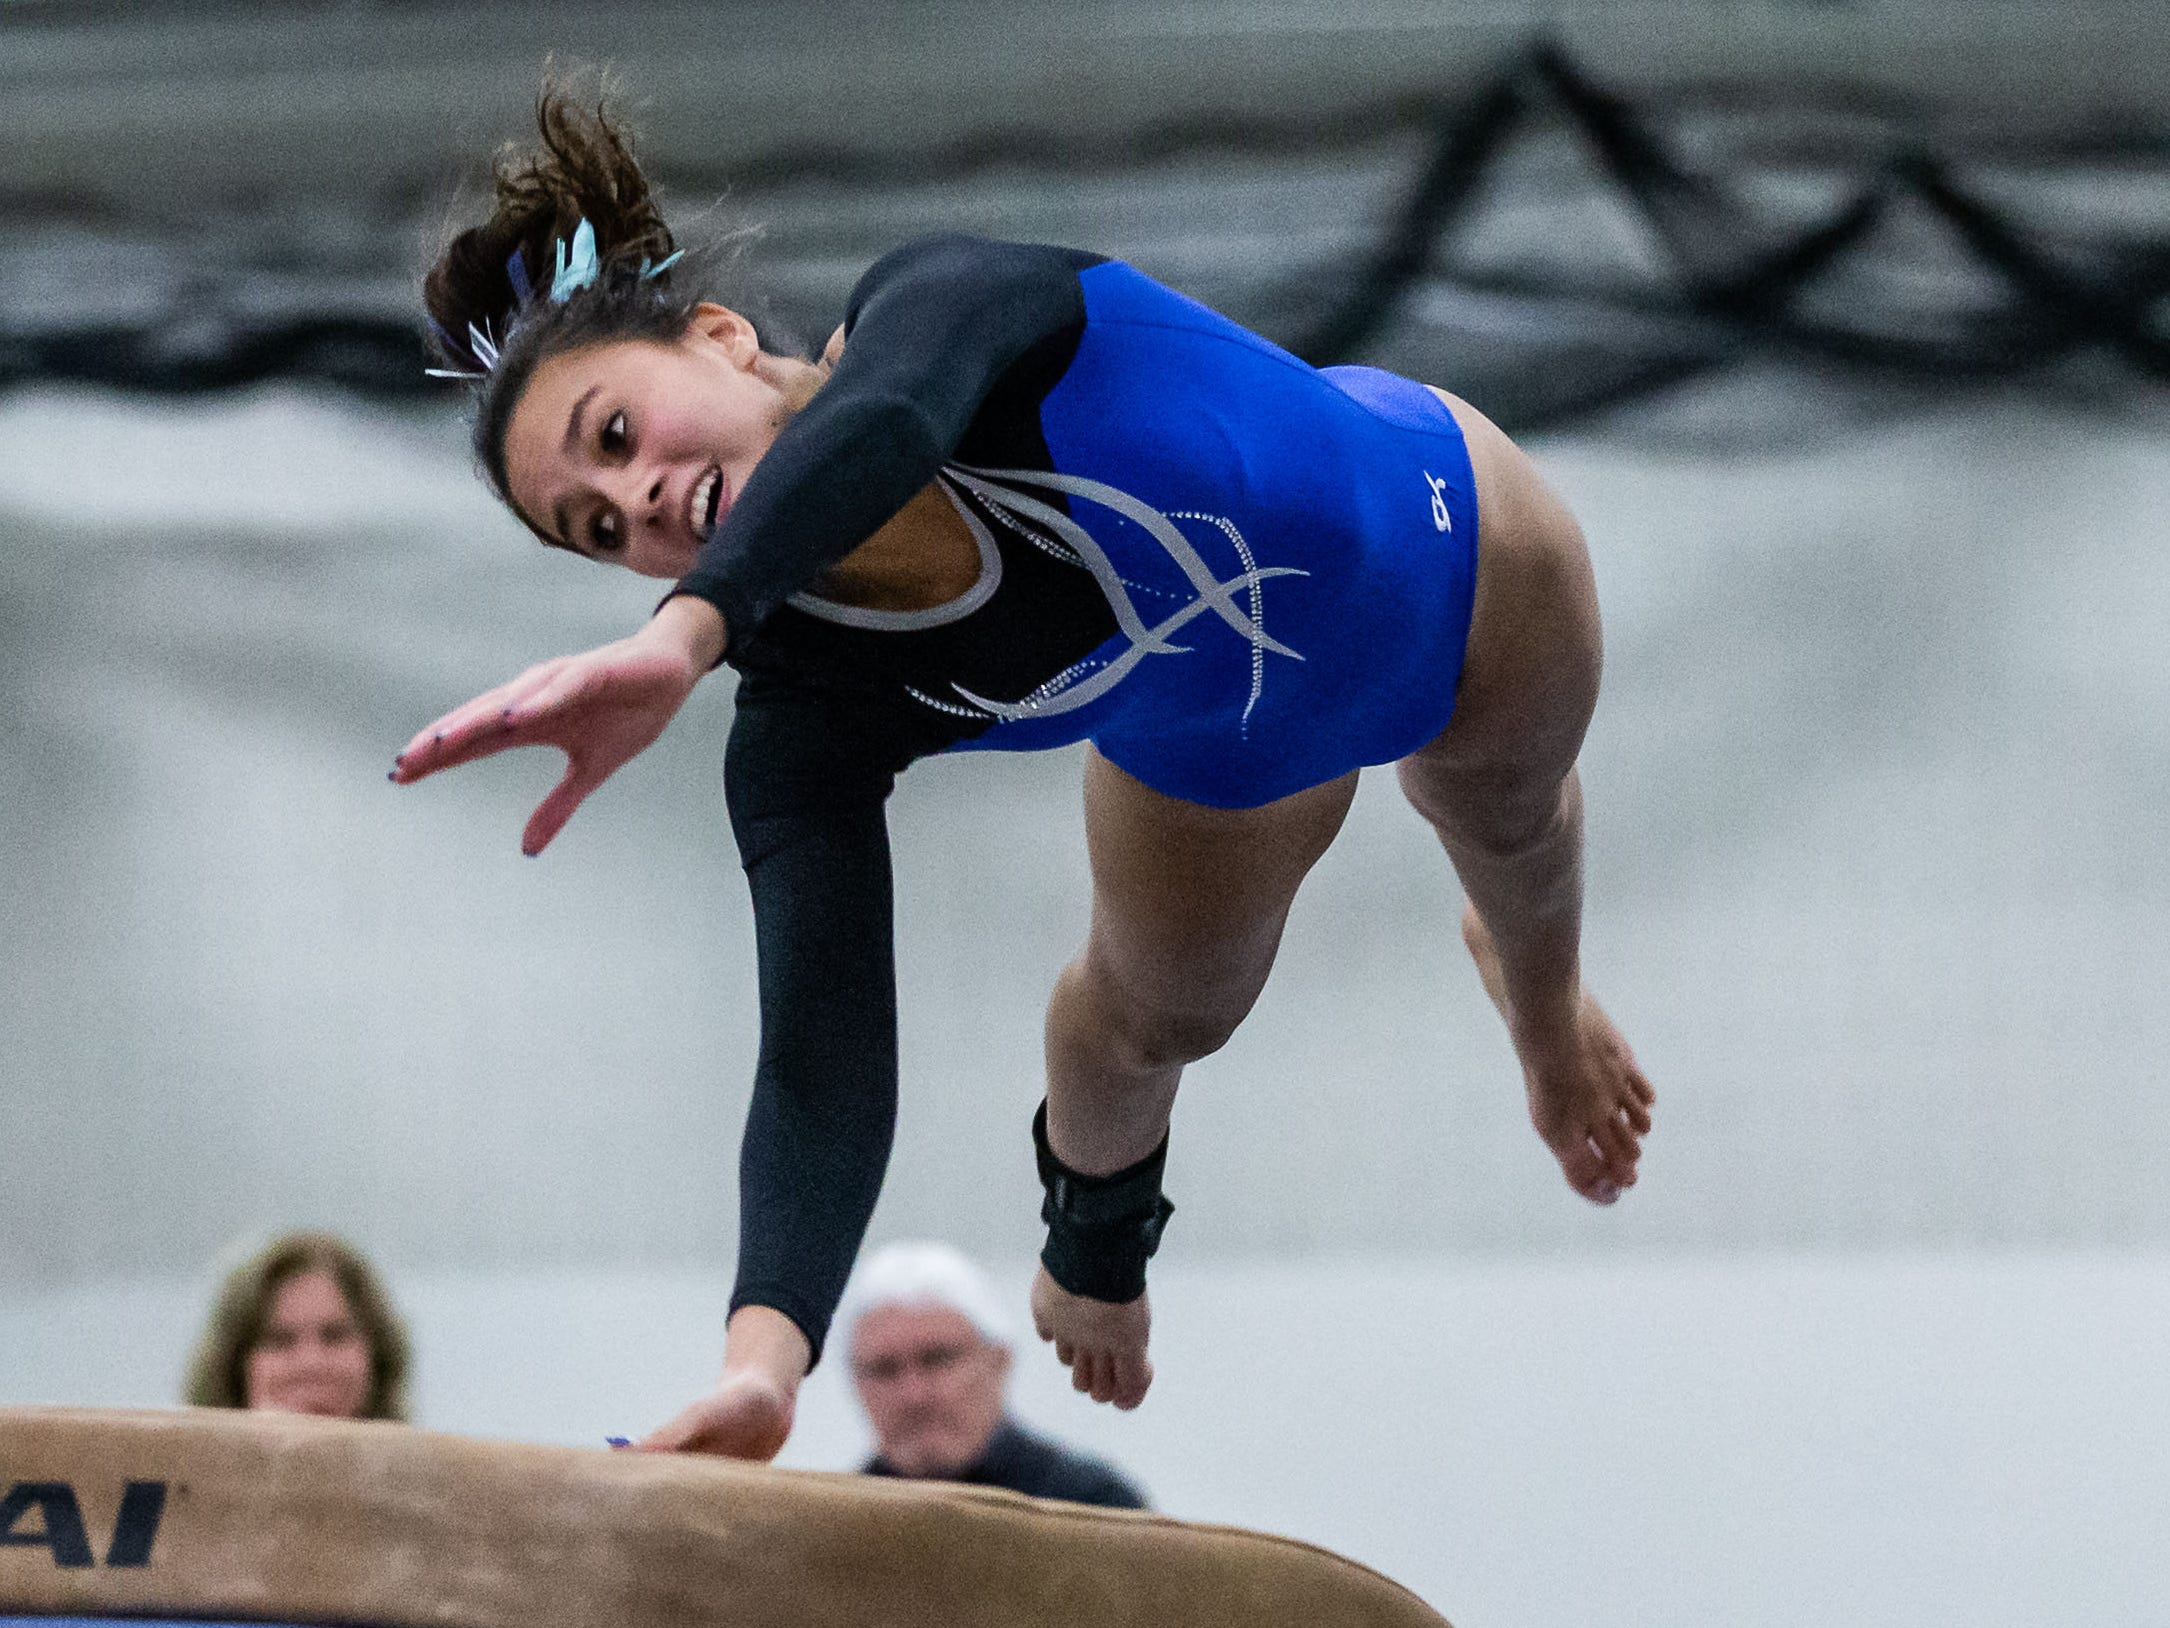 Nicolet gymnast Rachael Riedijk competes on the vault during the meet at home against Whitefish Bay on Thursday, Jan. 3, 2019.